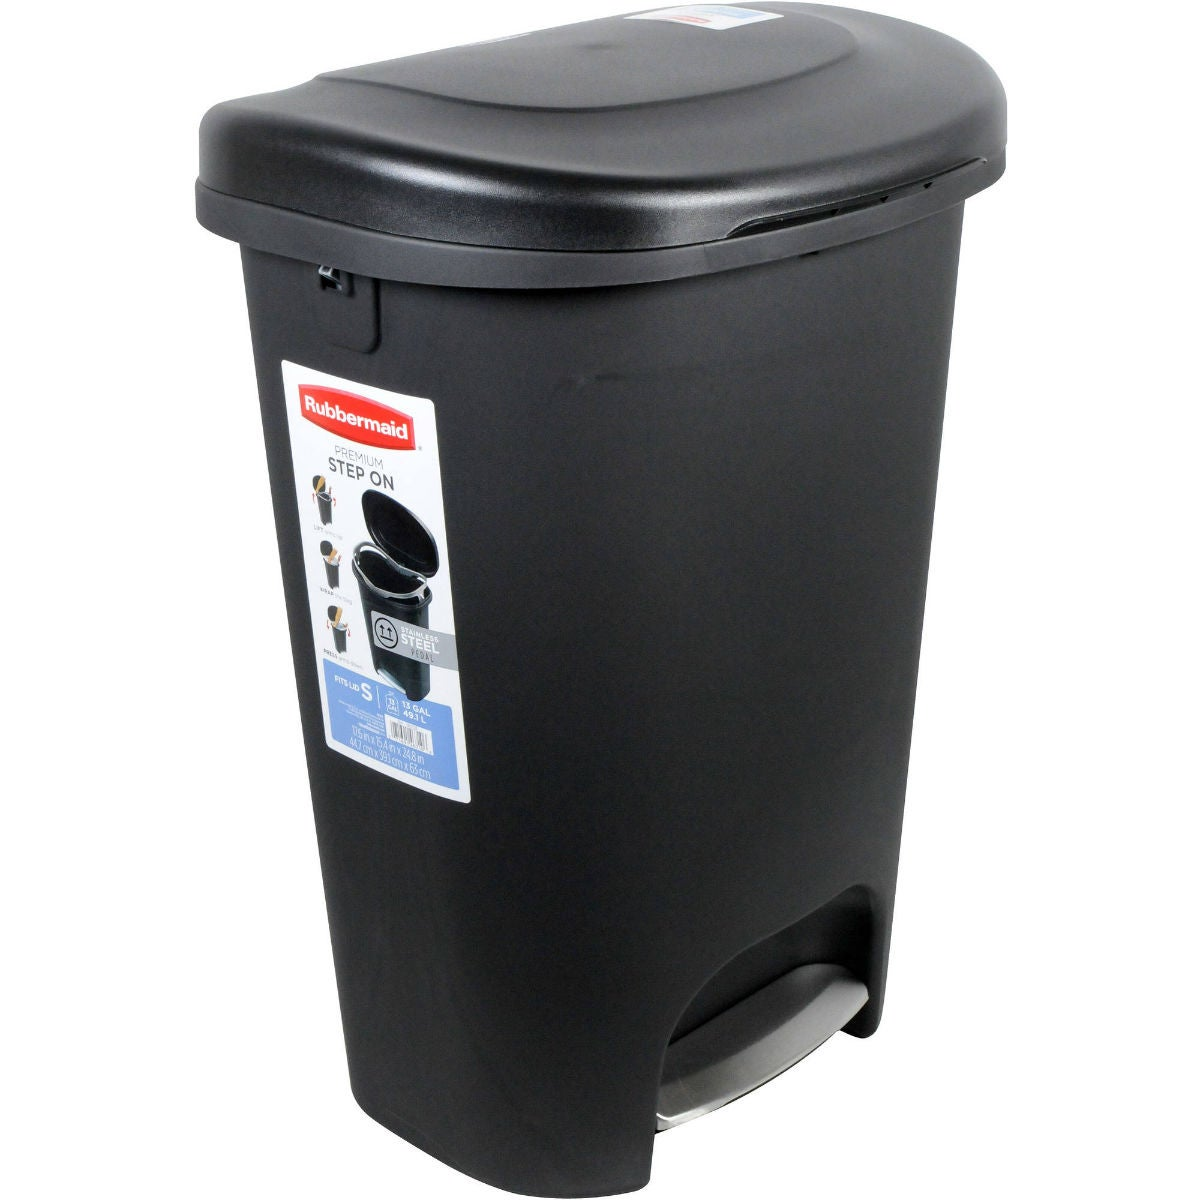 The Best Budget Kitchen Trash Can: Rubbermaid